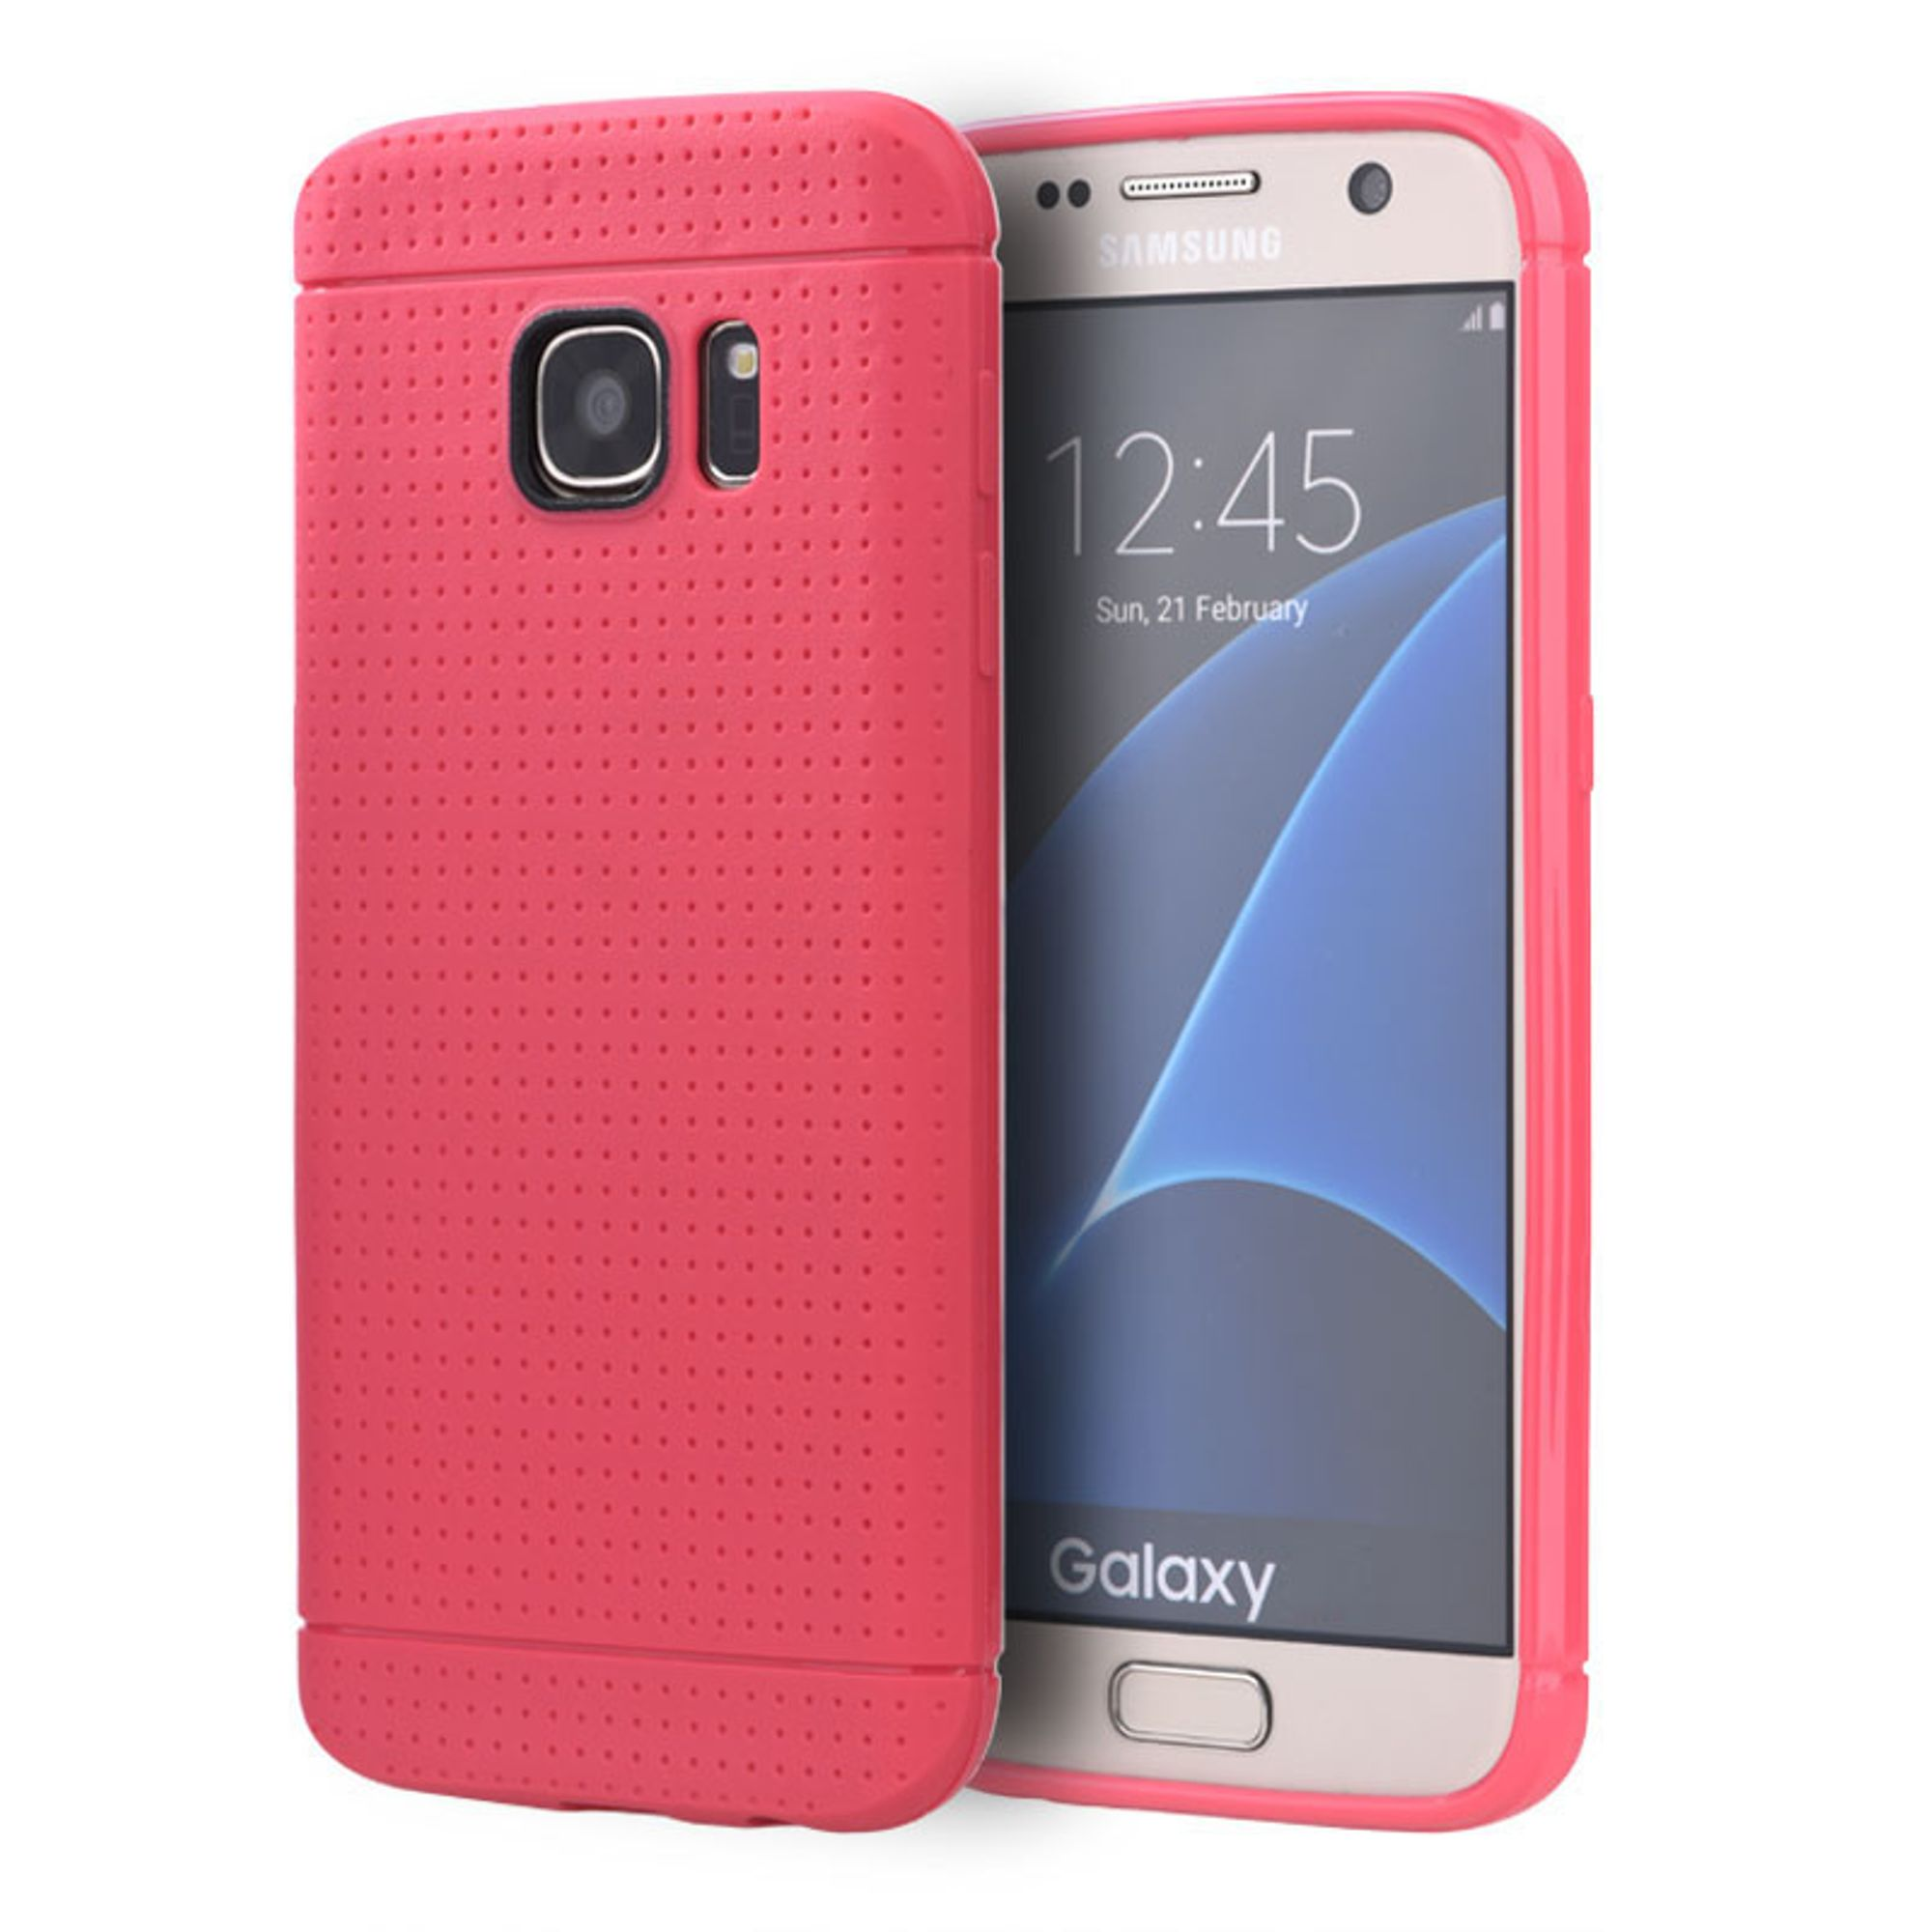 Samsung Galaxy S7 Case, by Insten Dots Rubber TPU Case Cover For Samsung Galaxy S7